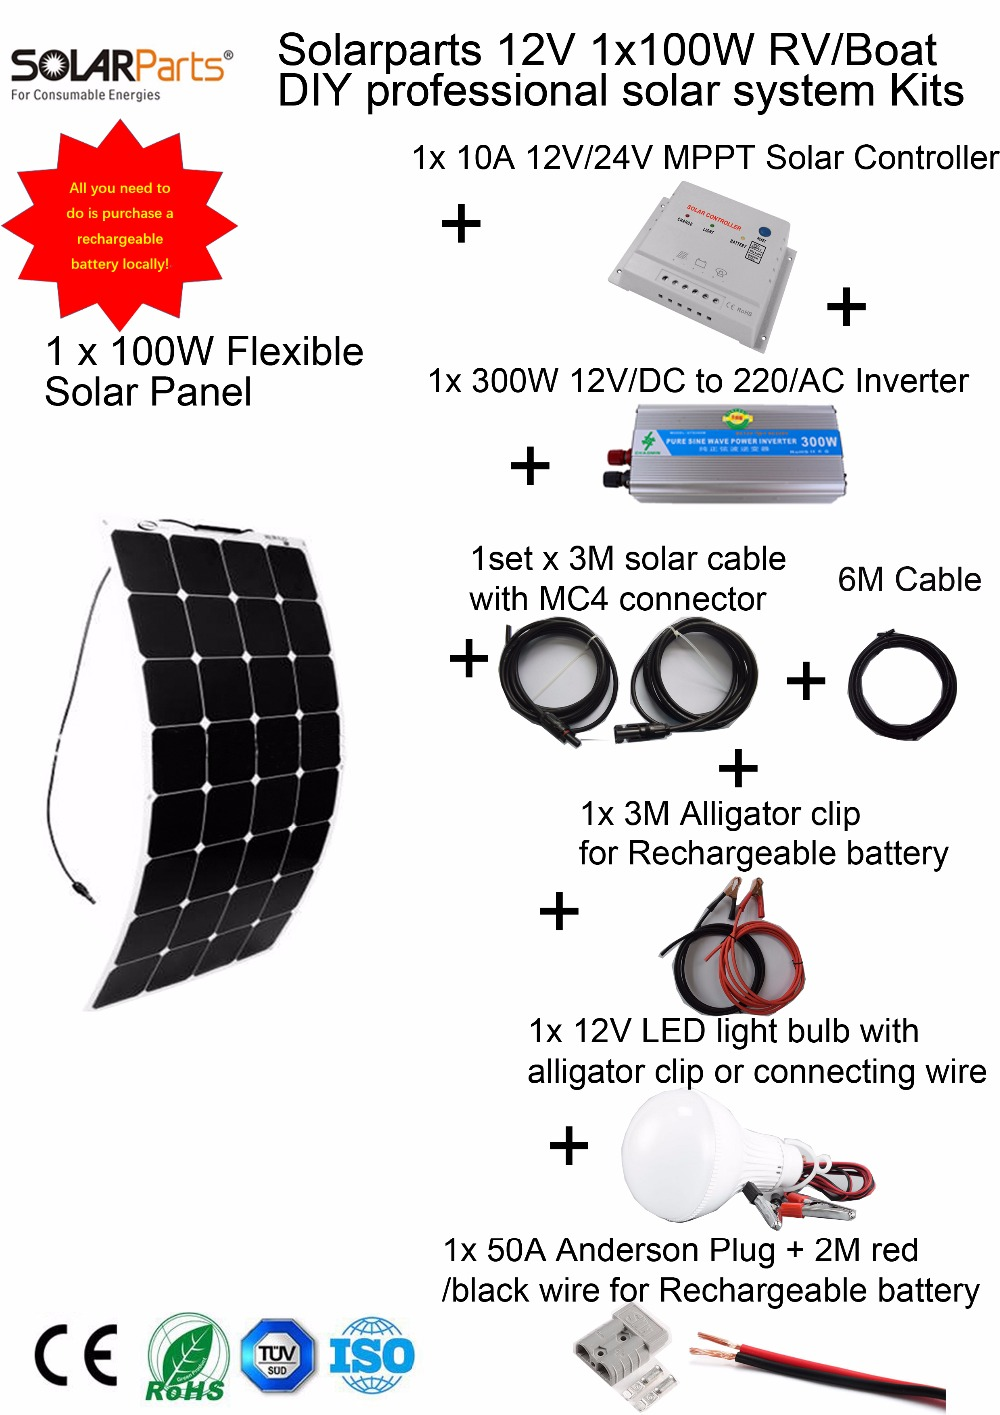 Solarparts 1x100W Professional DIY RV/Boat/Marine Kits Solar Home System 100W flexible solar panel MPPT controller Inverter LED. solarparts 100w diy rv marine kits solar system1x100w flexible solar panel 12v 1 x10a 12v 24v solar controller set cables cheap